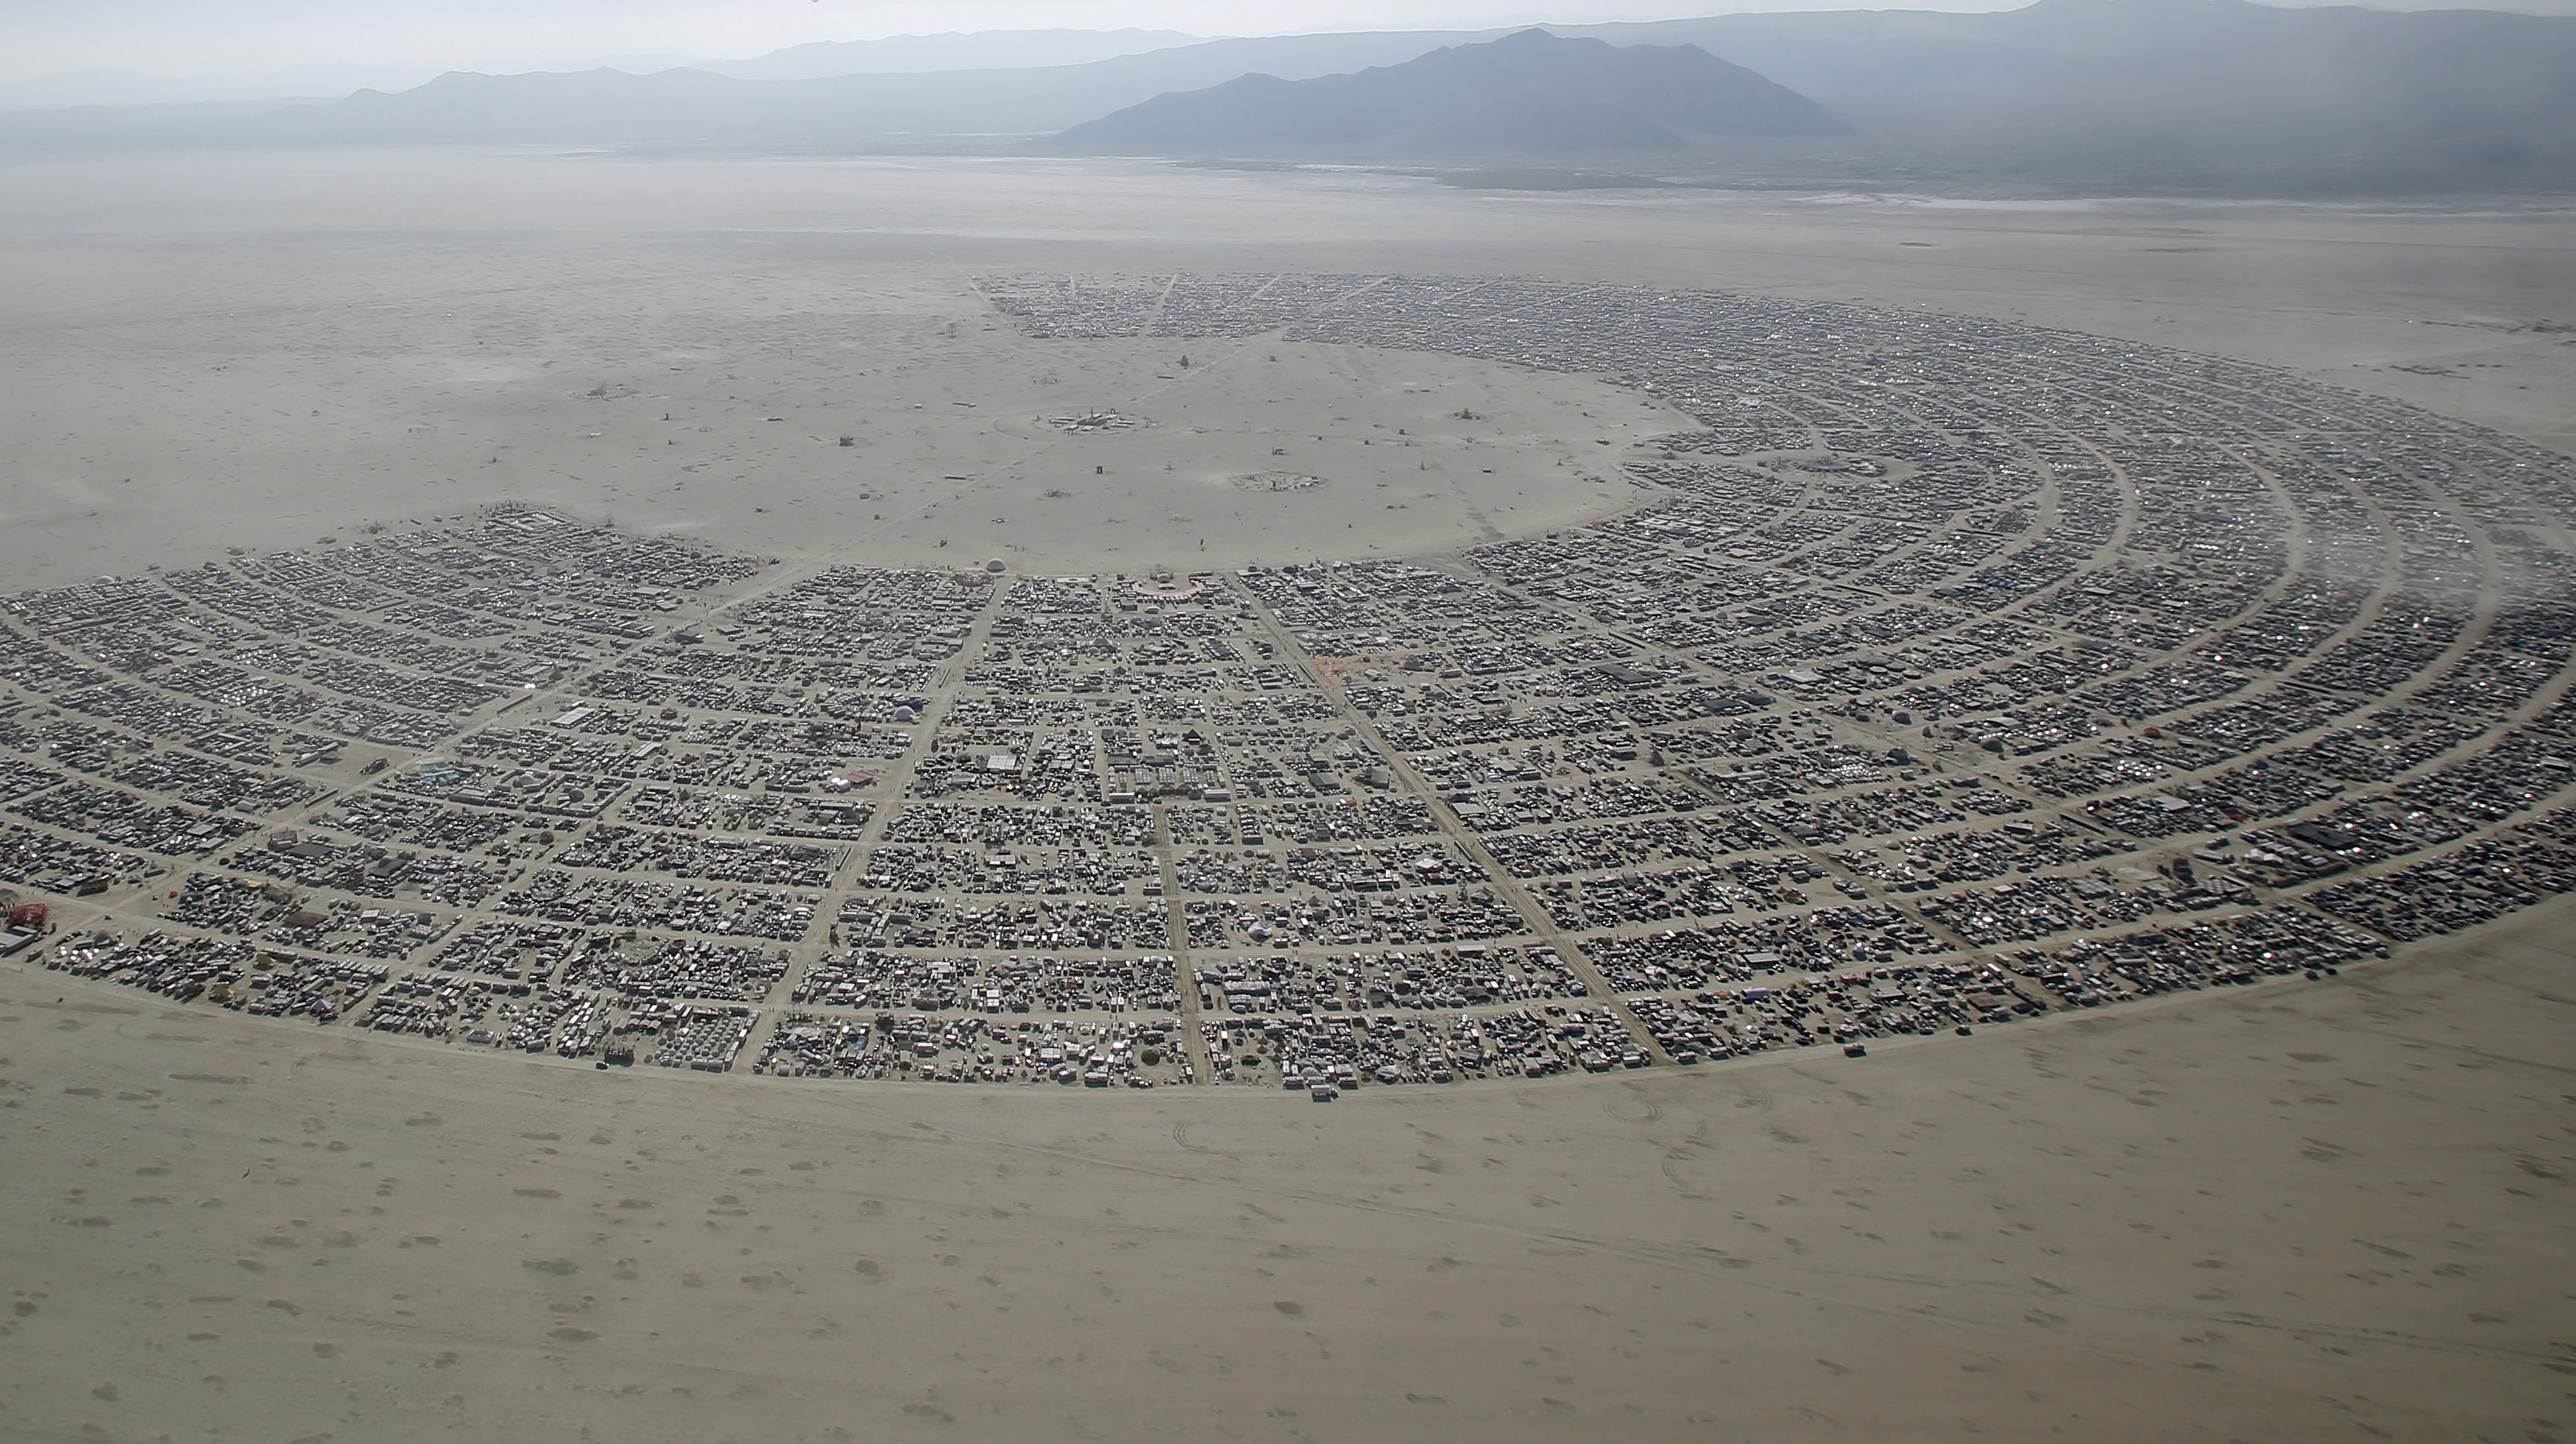 The Burning Man festival started when Larry Harvey, Jerry James and their friends met to light a bonfire on the summer solstice. It's grown throughout the years, and is expected to draw about 70,000 participants in 2015. Photo by Jim Urquhart/Reuters